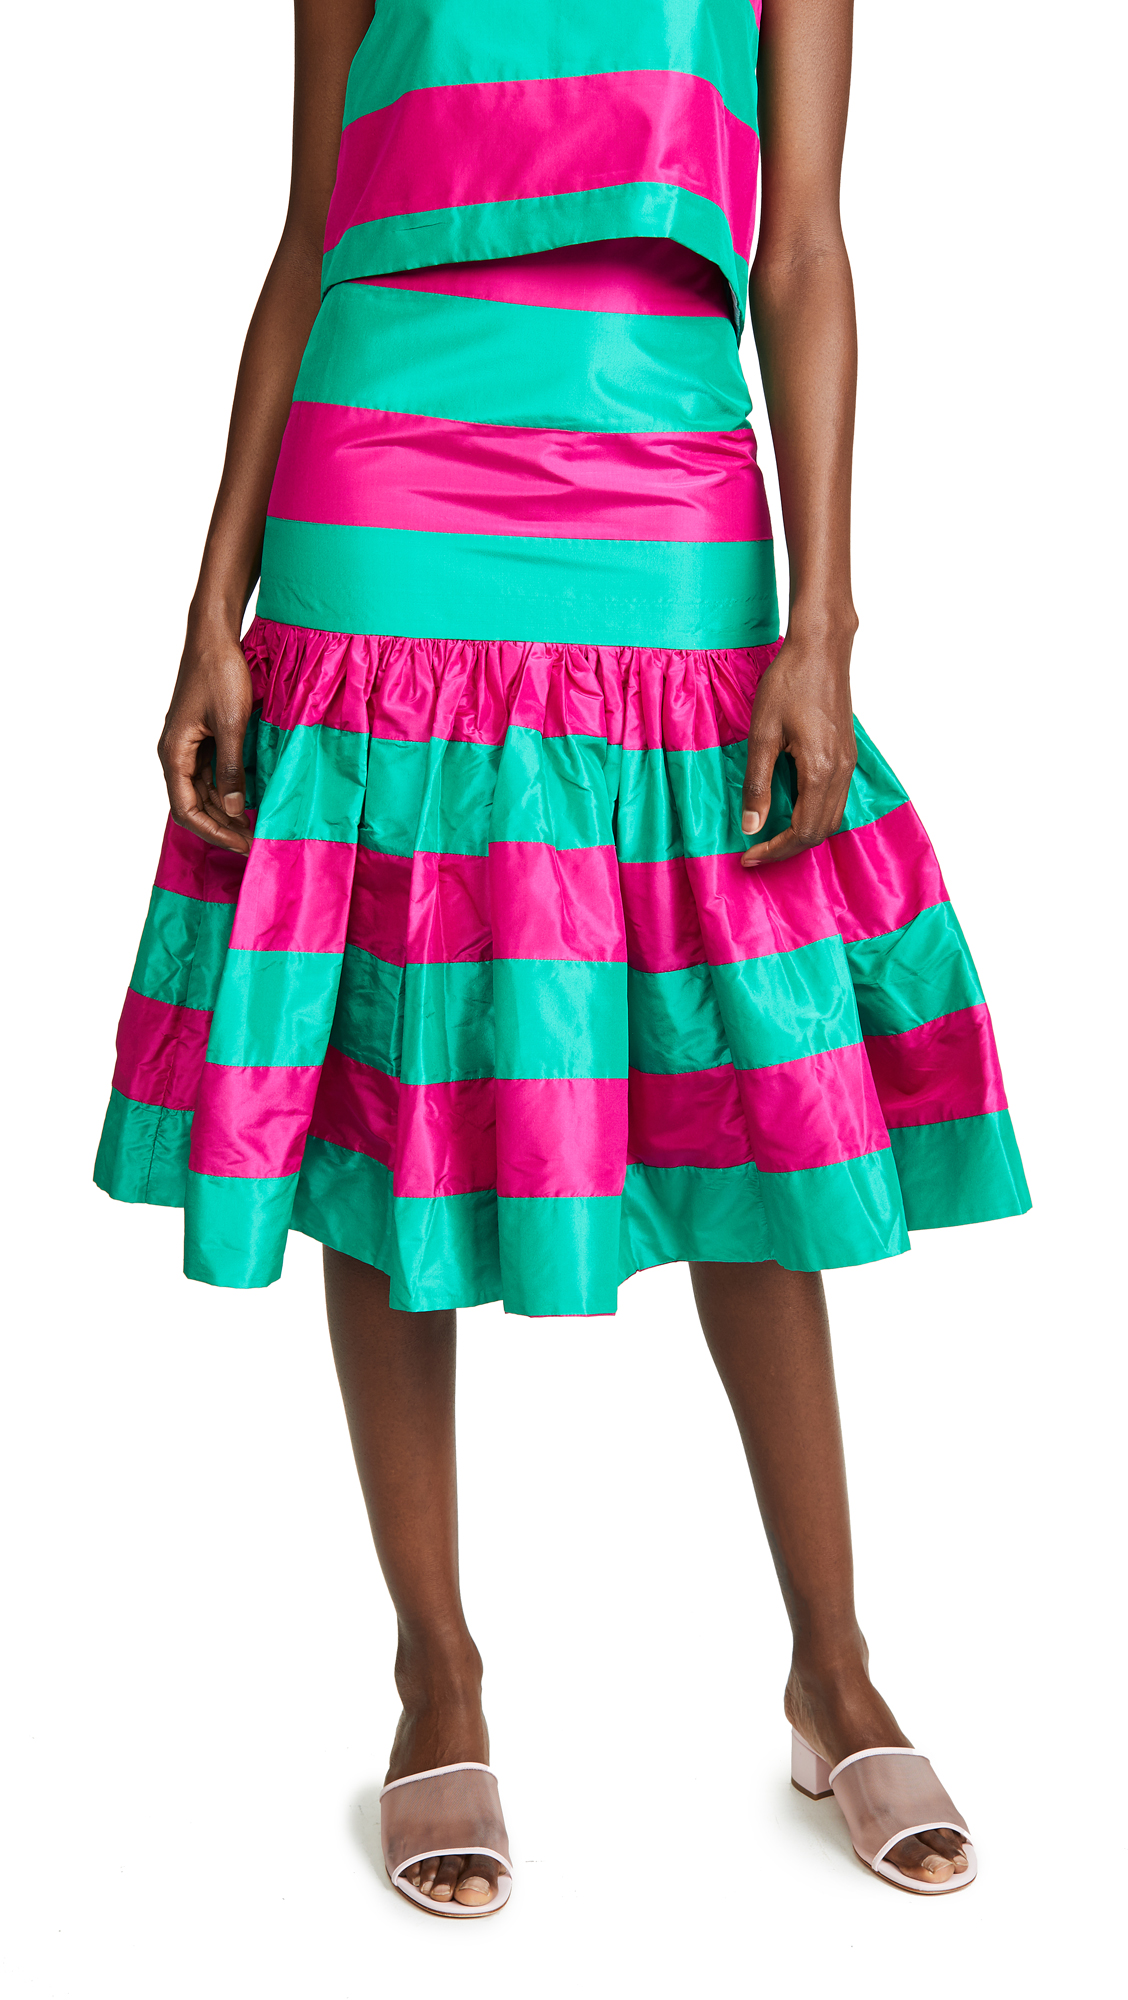 Leal Daccarett Torombolo Skirt In Red/Green Stripes